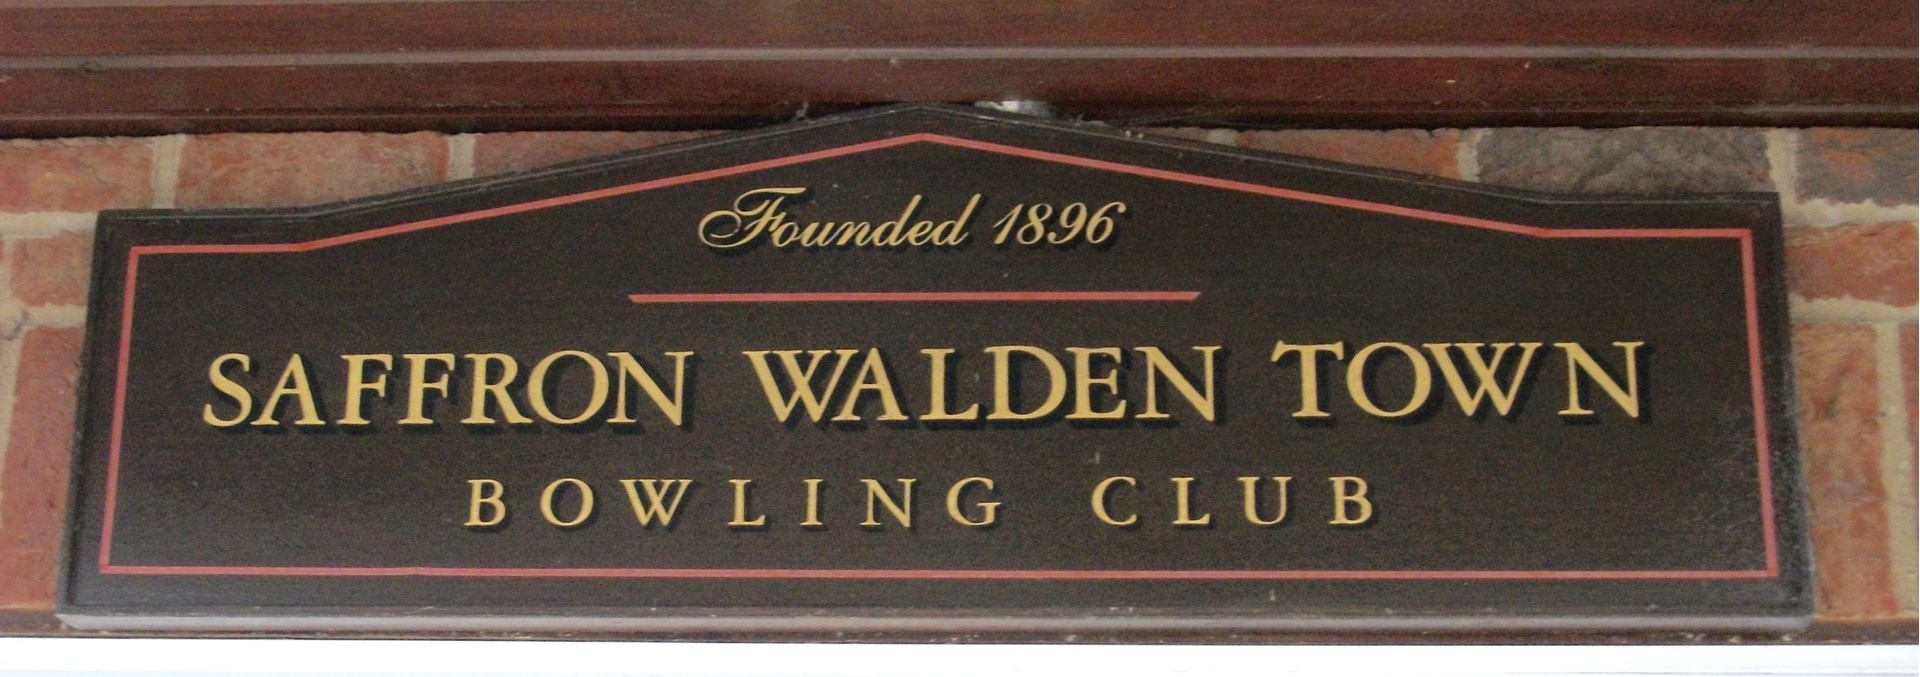 Saffron Walden Town Bowls Club About Us